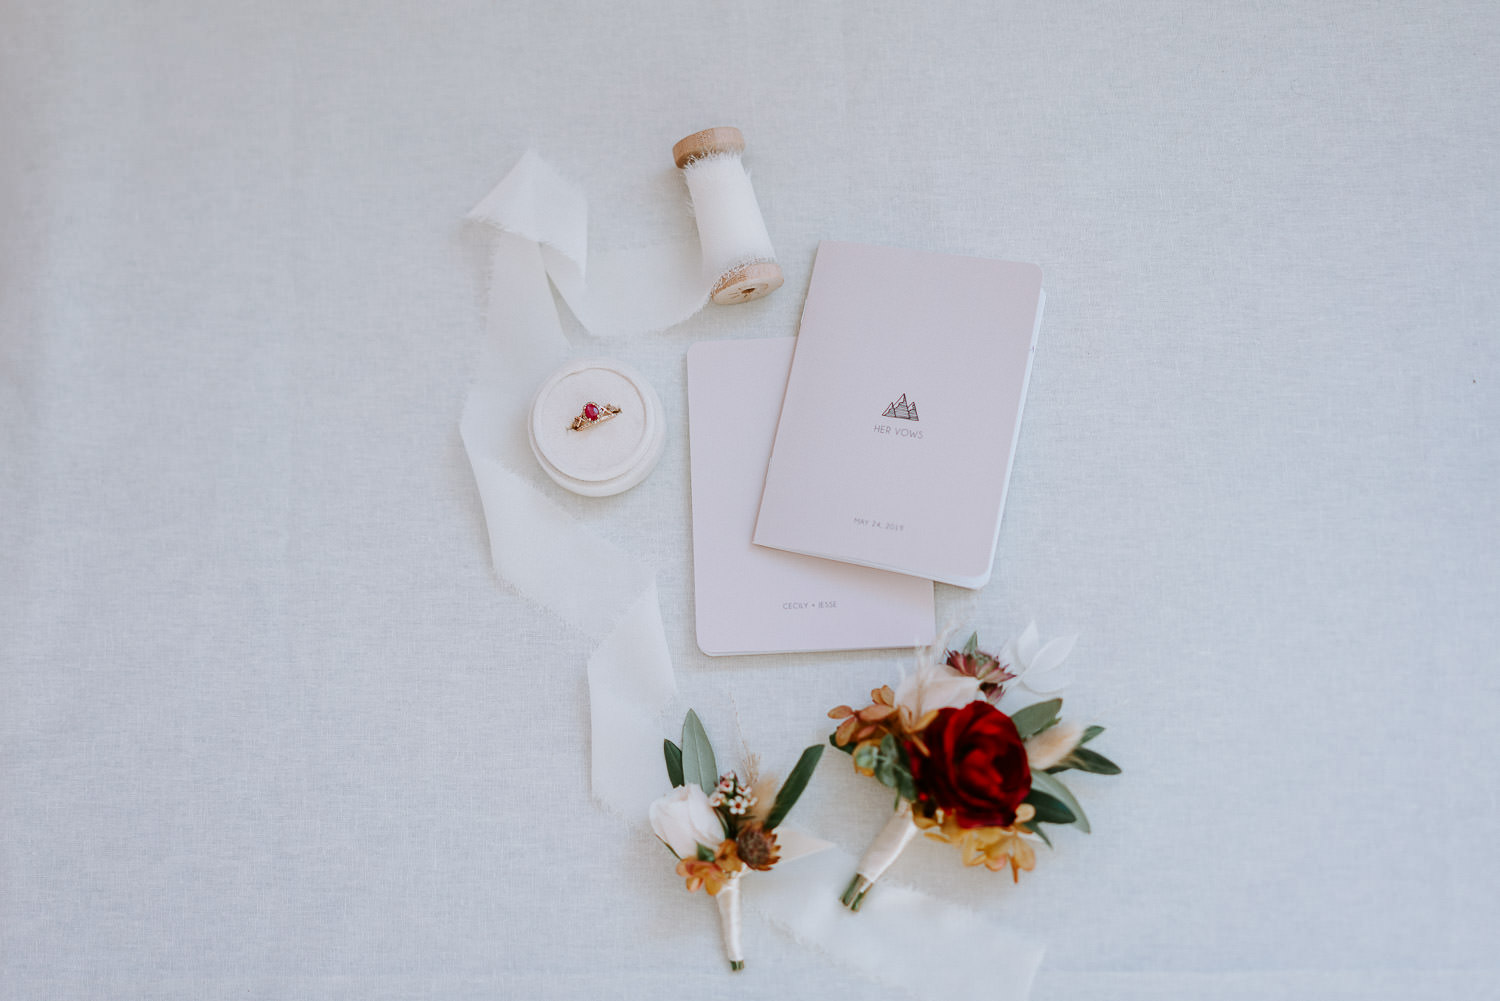 wedding details, ring, vow books, boutonniere